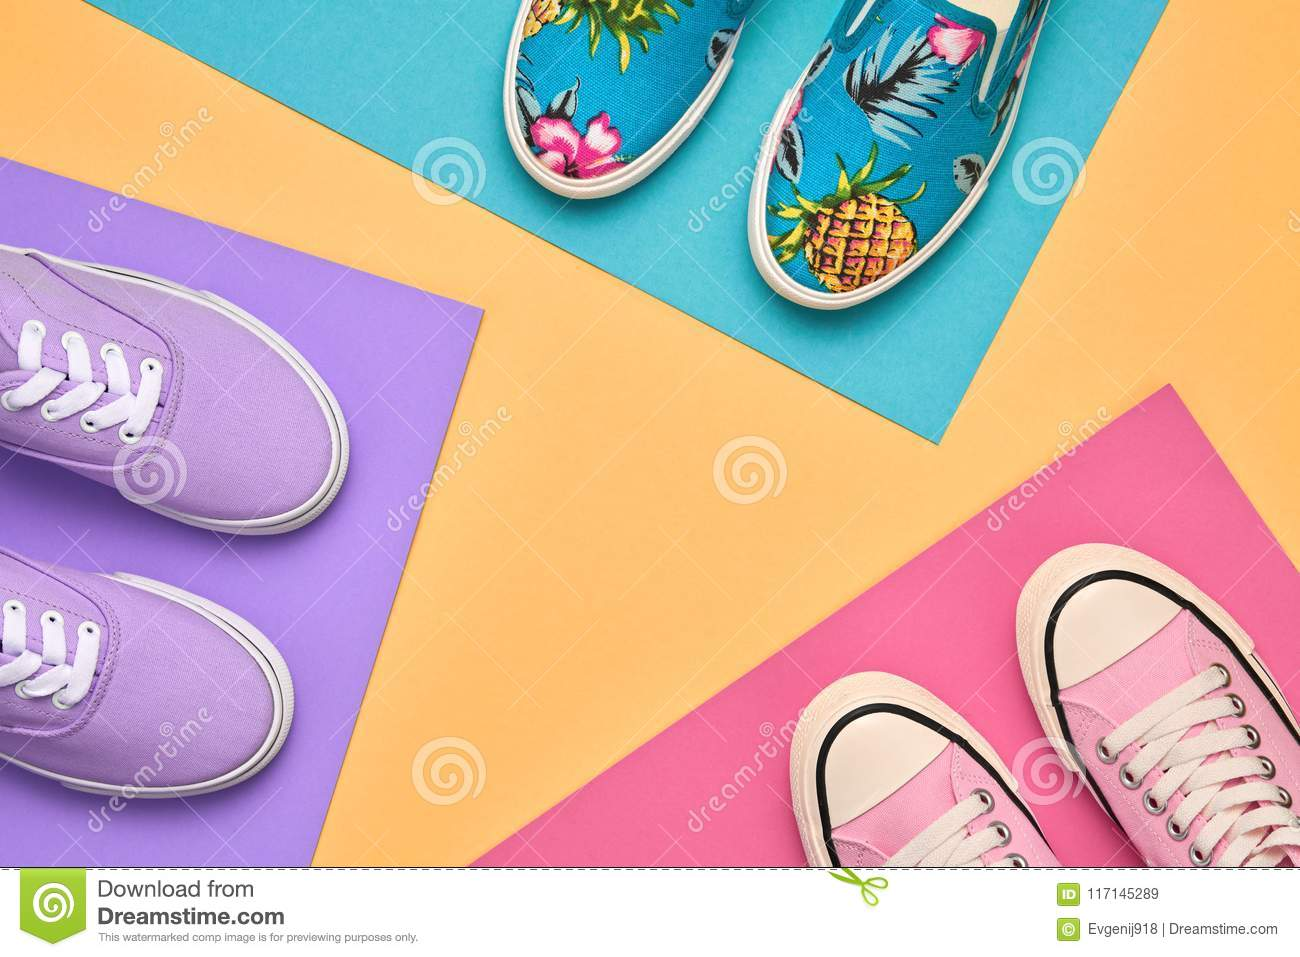 0050d3421f9d8c Stylish Trainers shoes. Minimal Design. Summer Hipster Girl Essentials.  Shopping Sale Discount concept. Glamor Trendy Sneakers Set. Flat lay.  Creative Art. ...